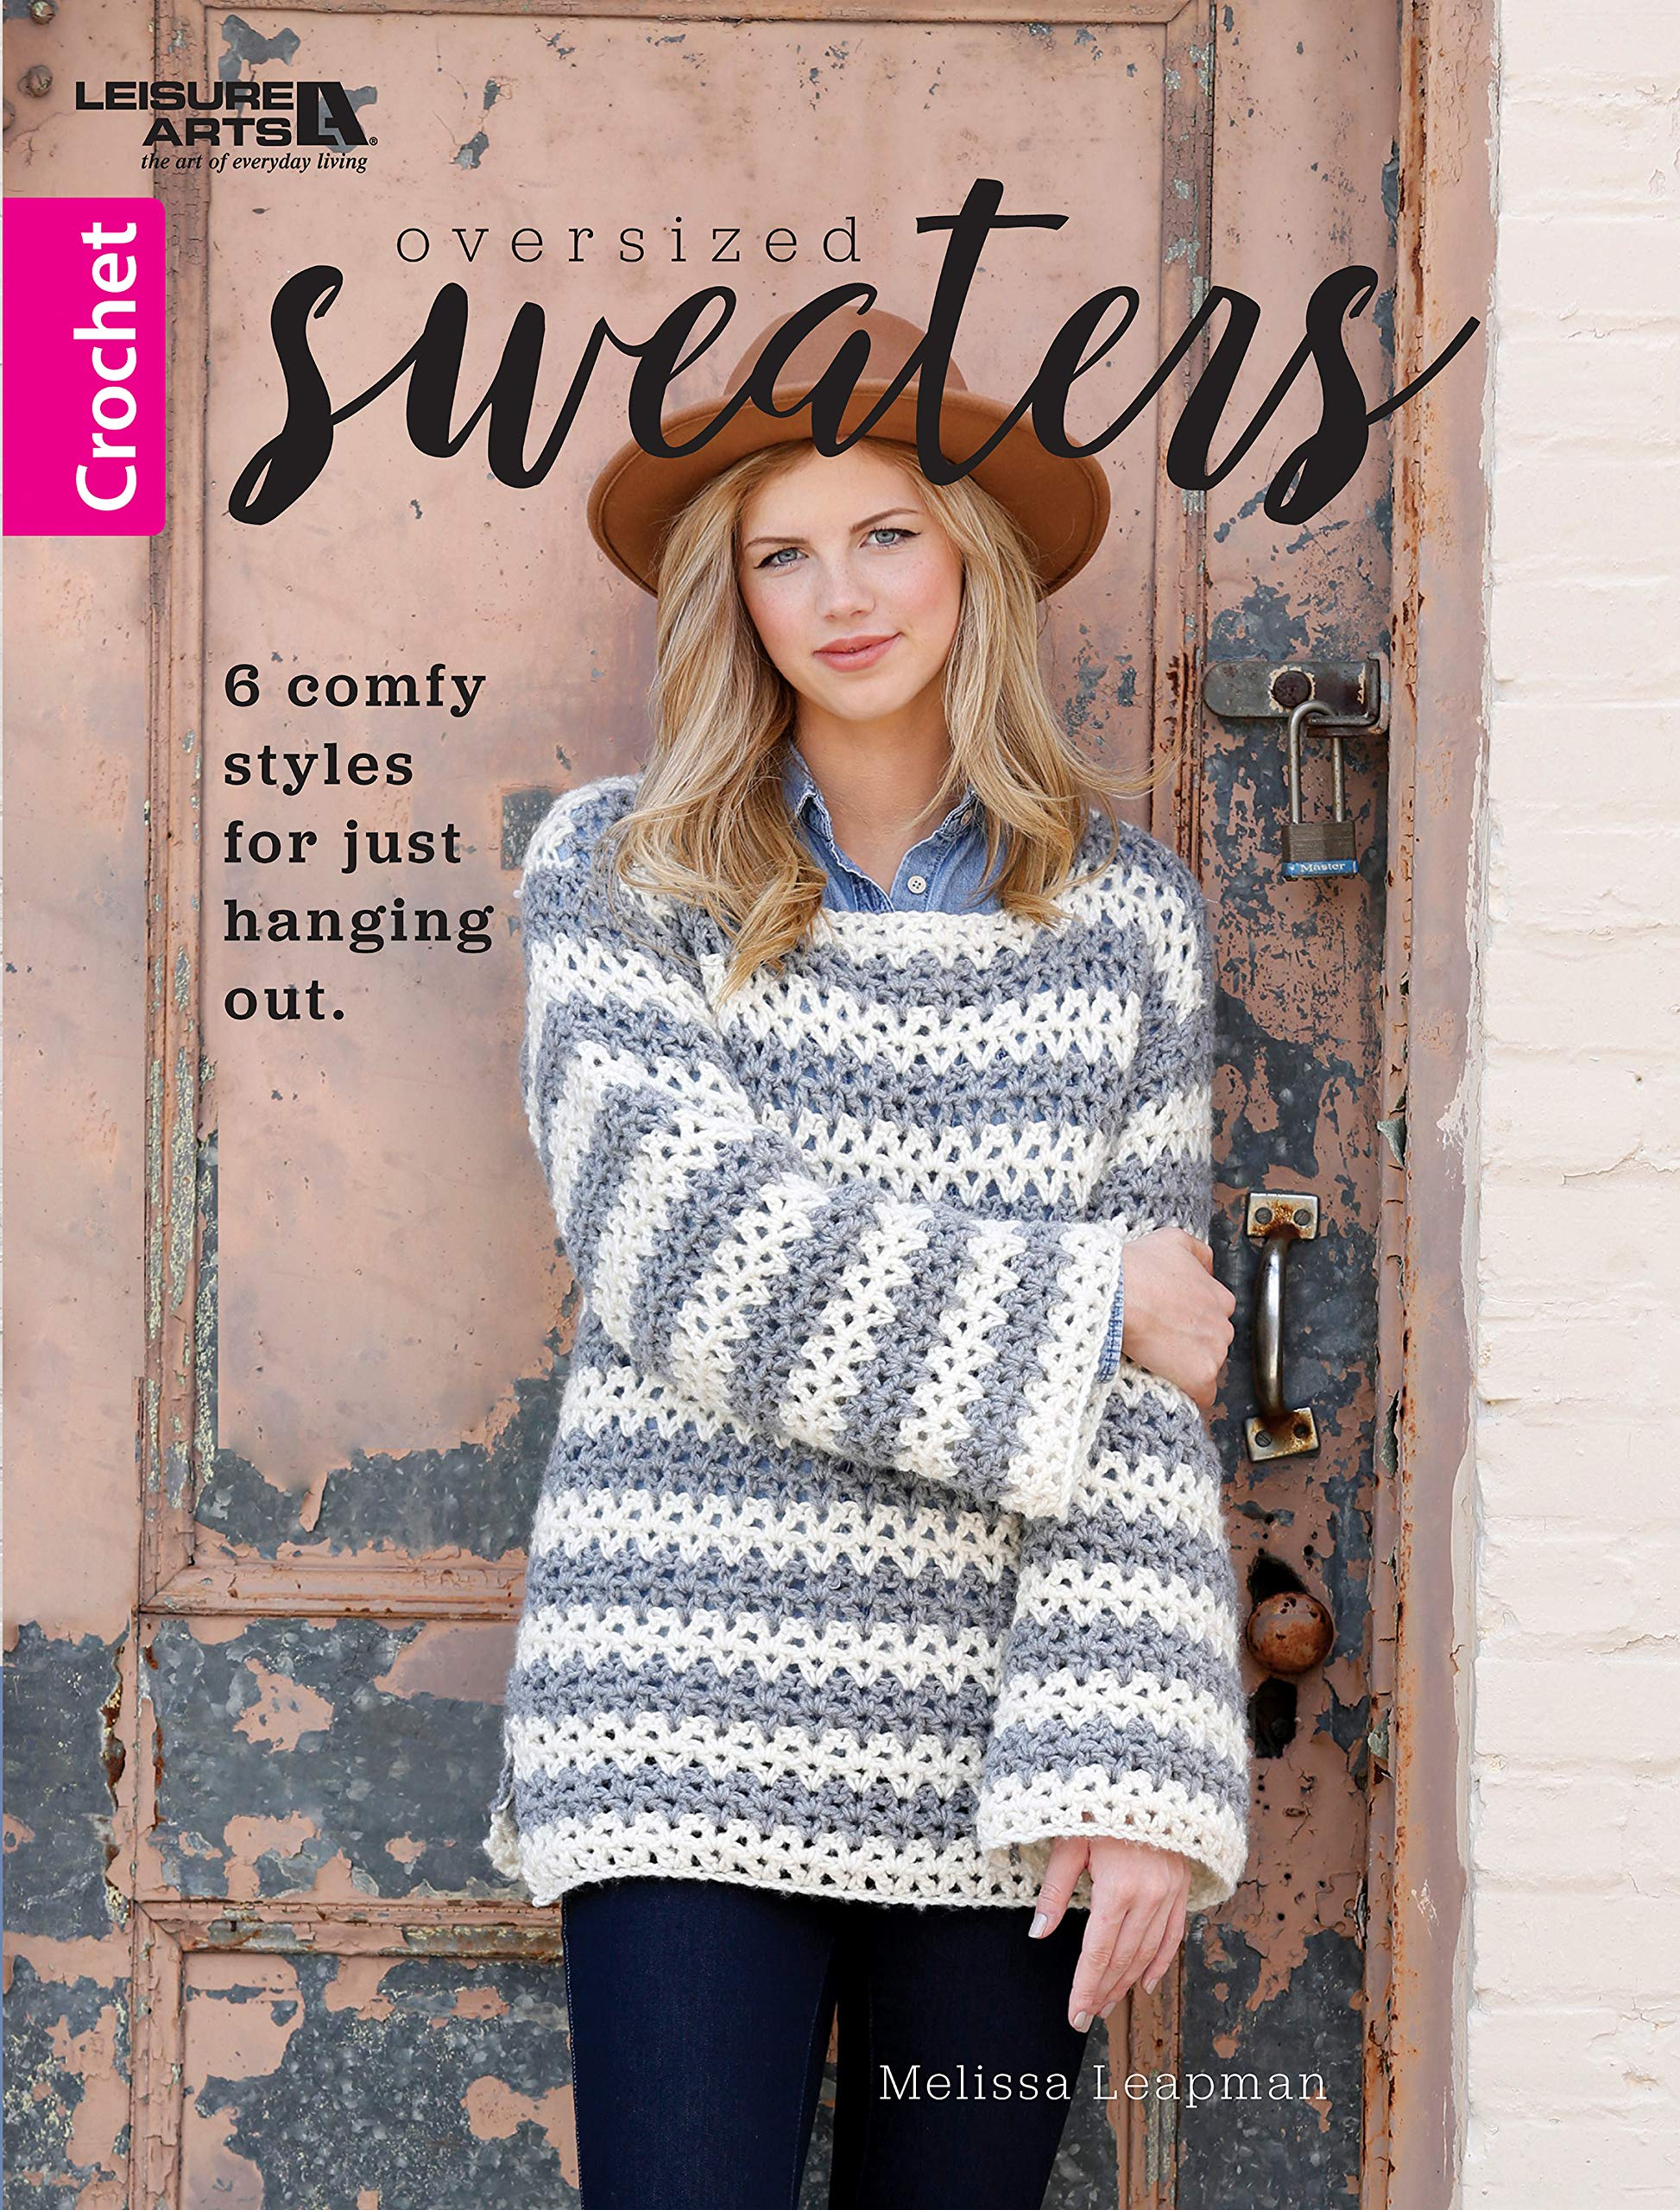 Oversized Sweaters 6 Comfy Crochet Sweater Styles for Just